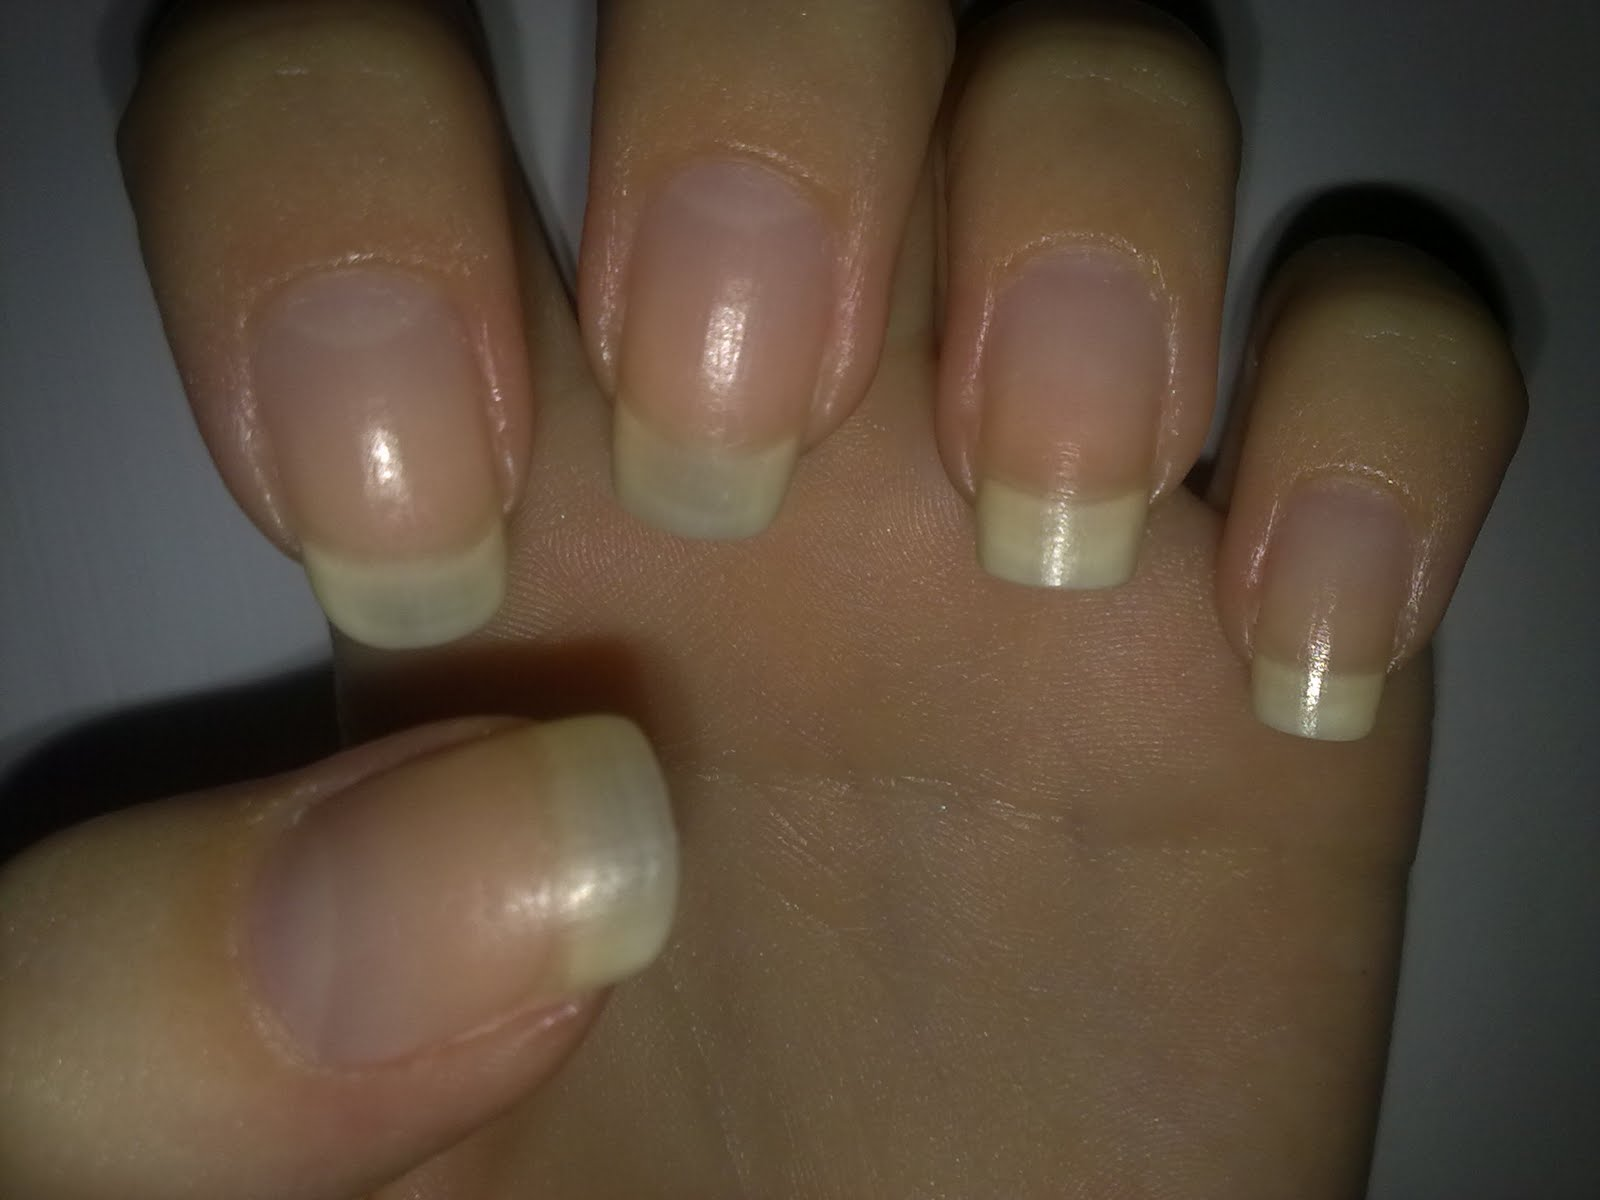 Took Off Nail Polish And Nails Are White - Absolute cycle